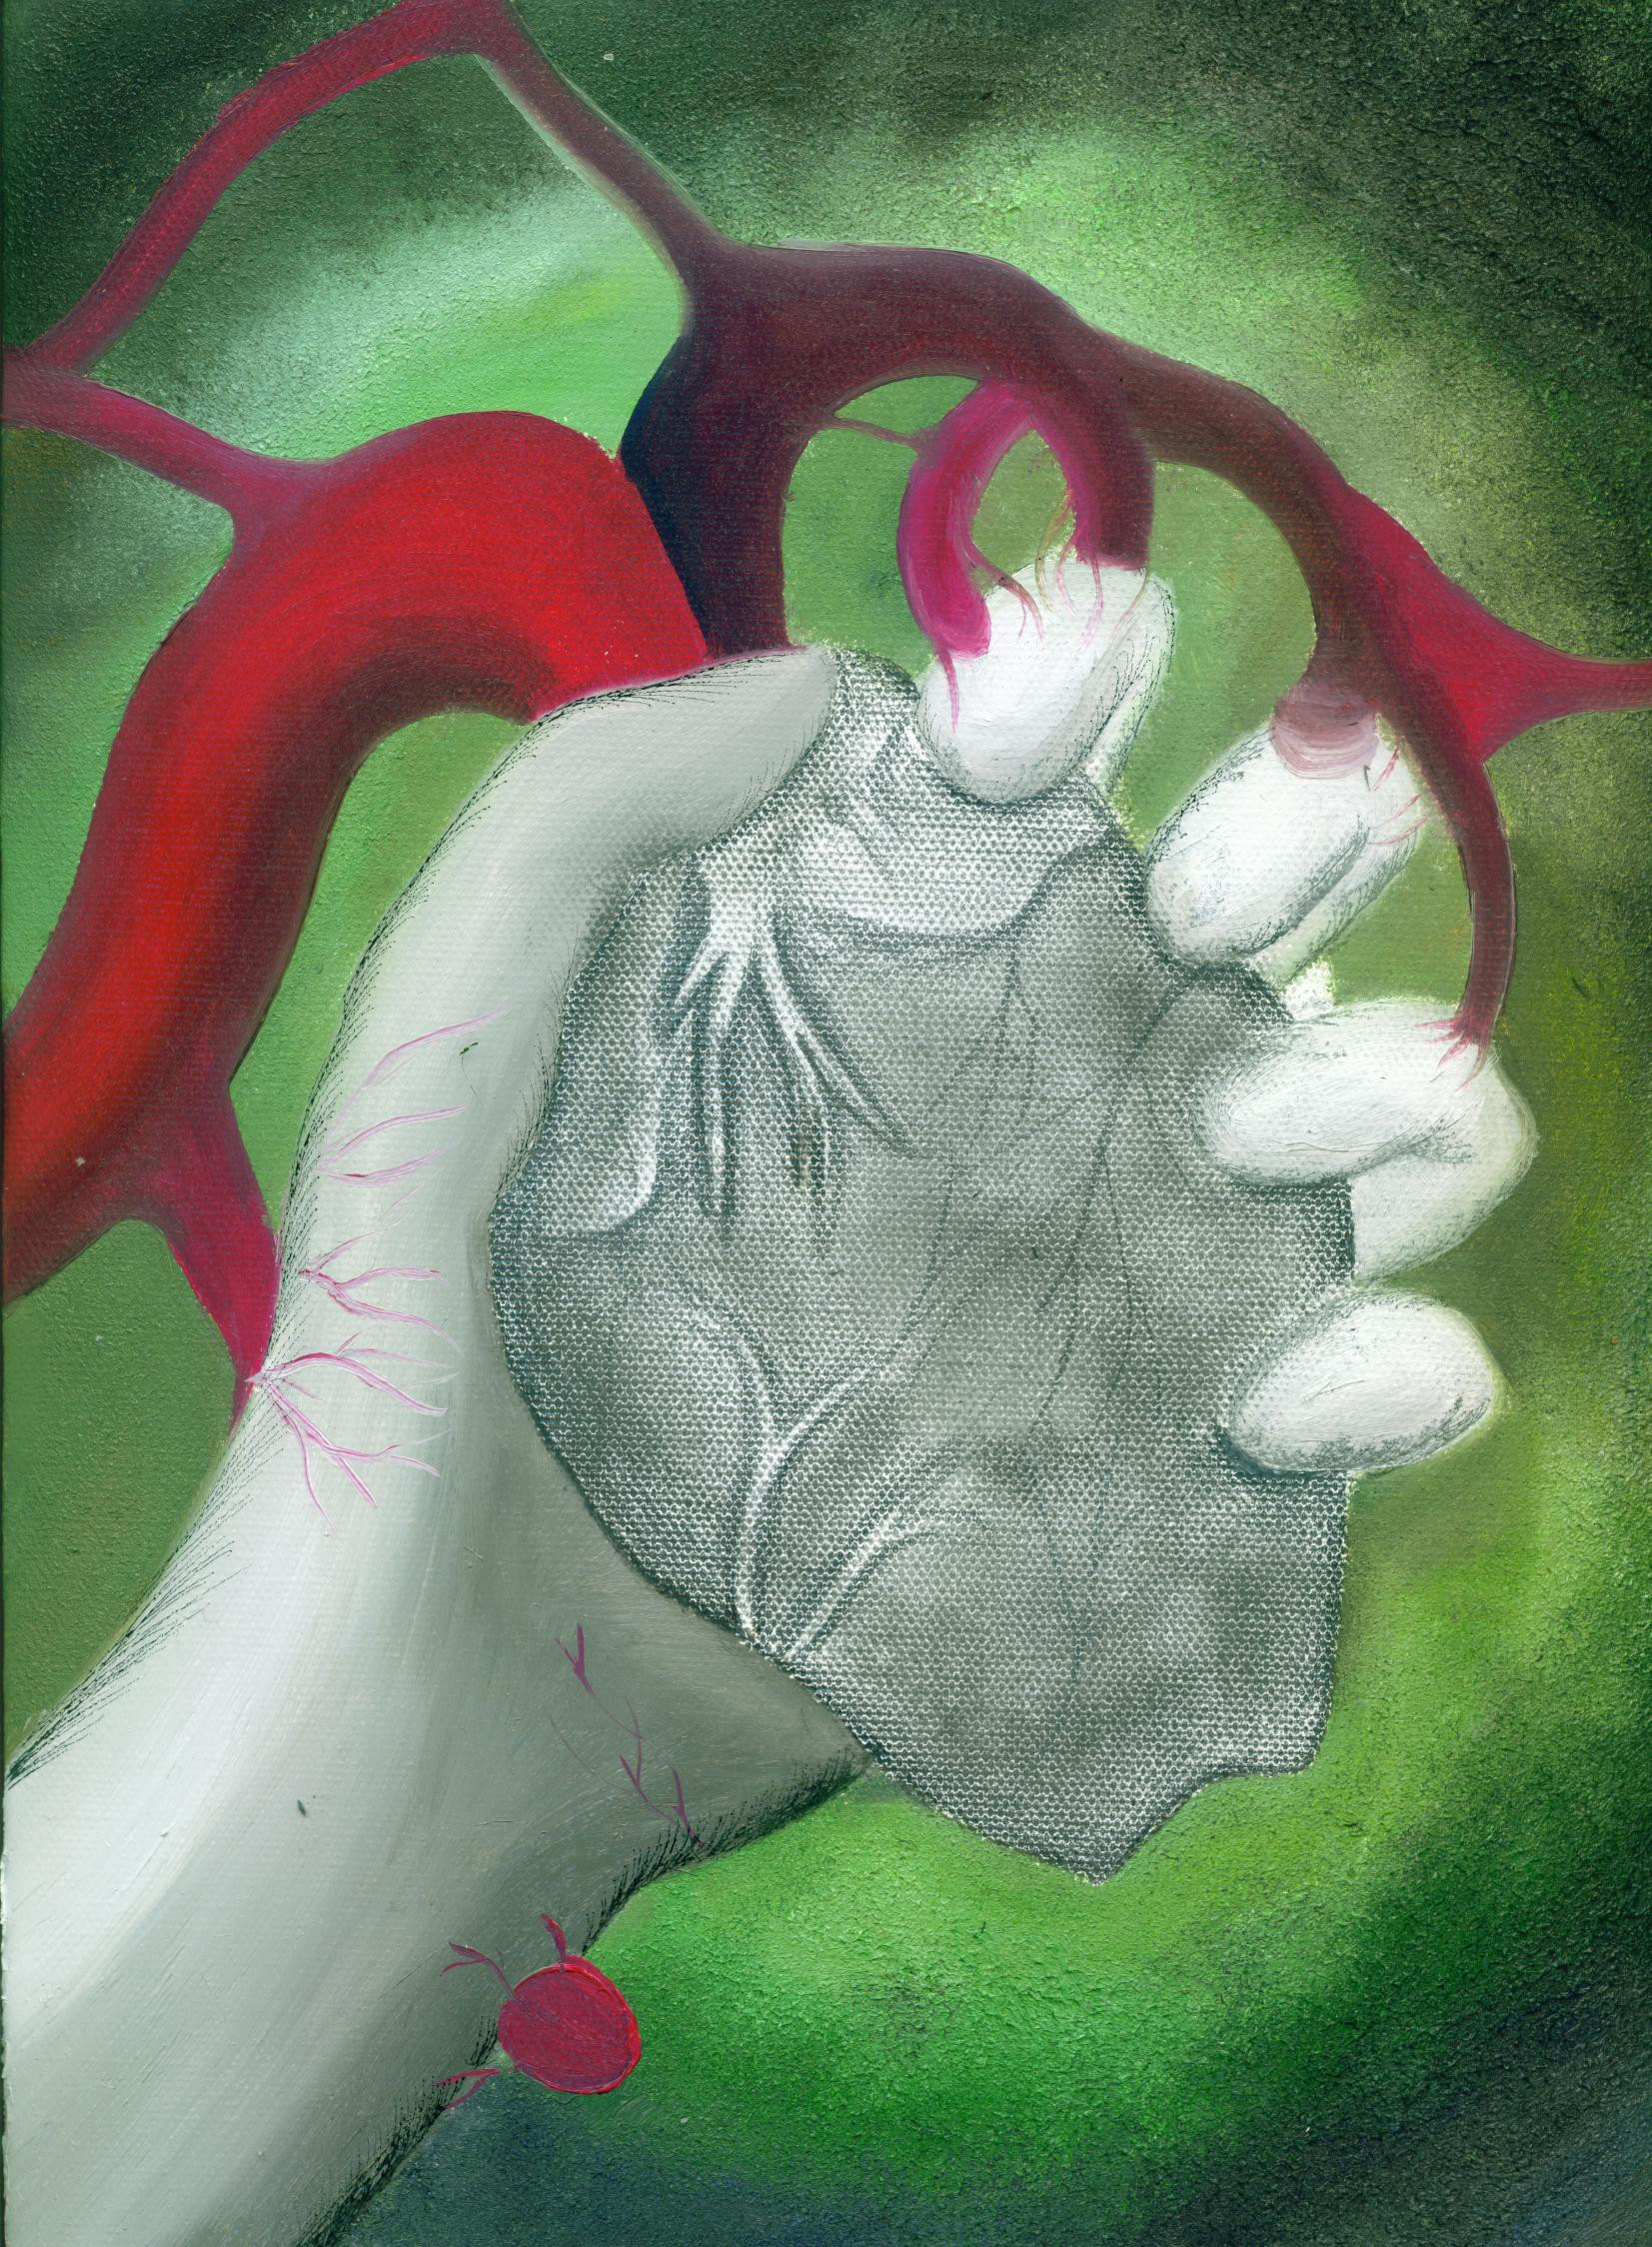 Hand Holding Heart Drawings Hand Holding Anatomical Heart